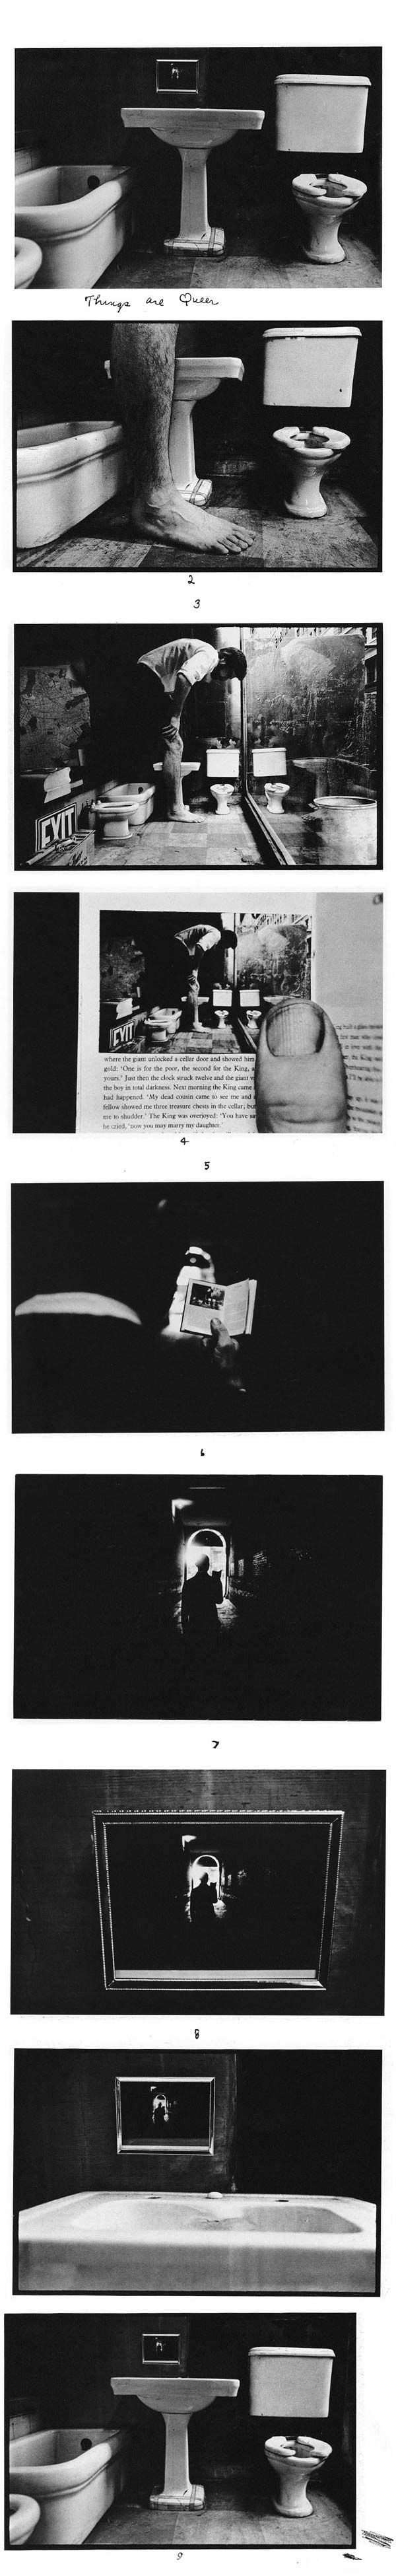 Things Are Queer (1973), Duane Michals    http://longitudephotography.files.wordpress.com/2011/07/things-are-queer-1973-duane-michals.jpg